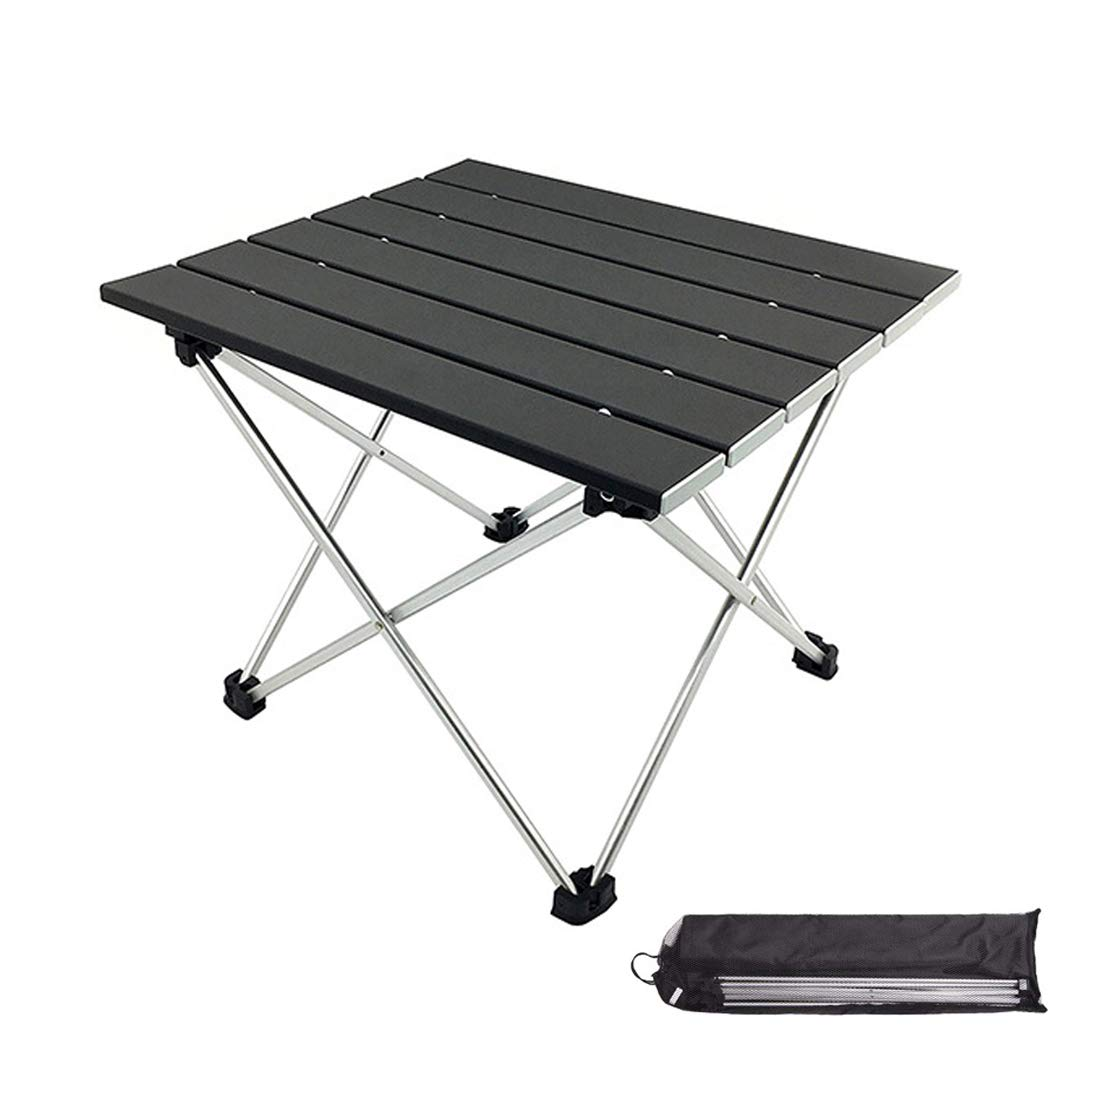 MORITIA Folding Camping Table, Portable Aluminum Lightweight Folding Table in a Bag Outdoor for Grill, Picnic, Beach, Useful for Dining Cooking with Burner